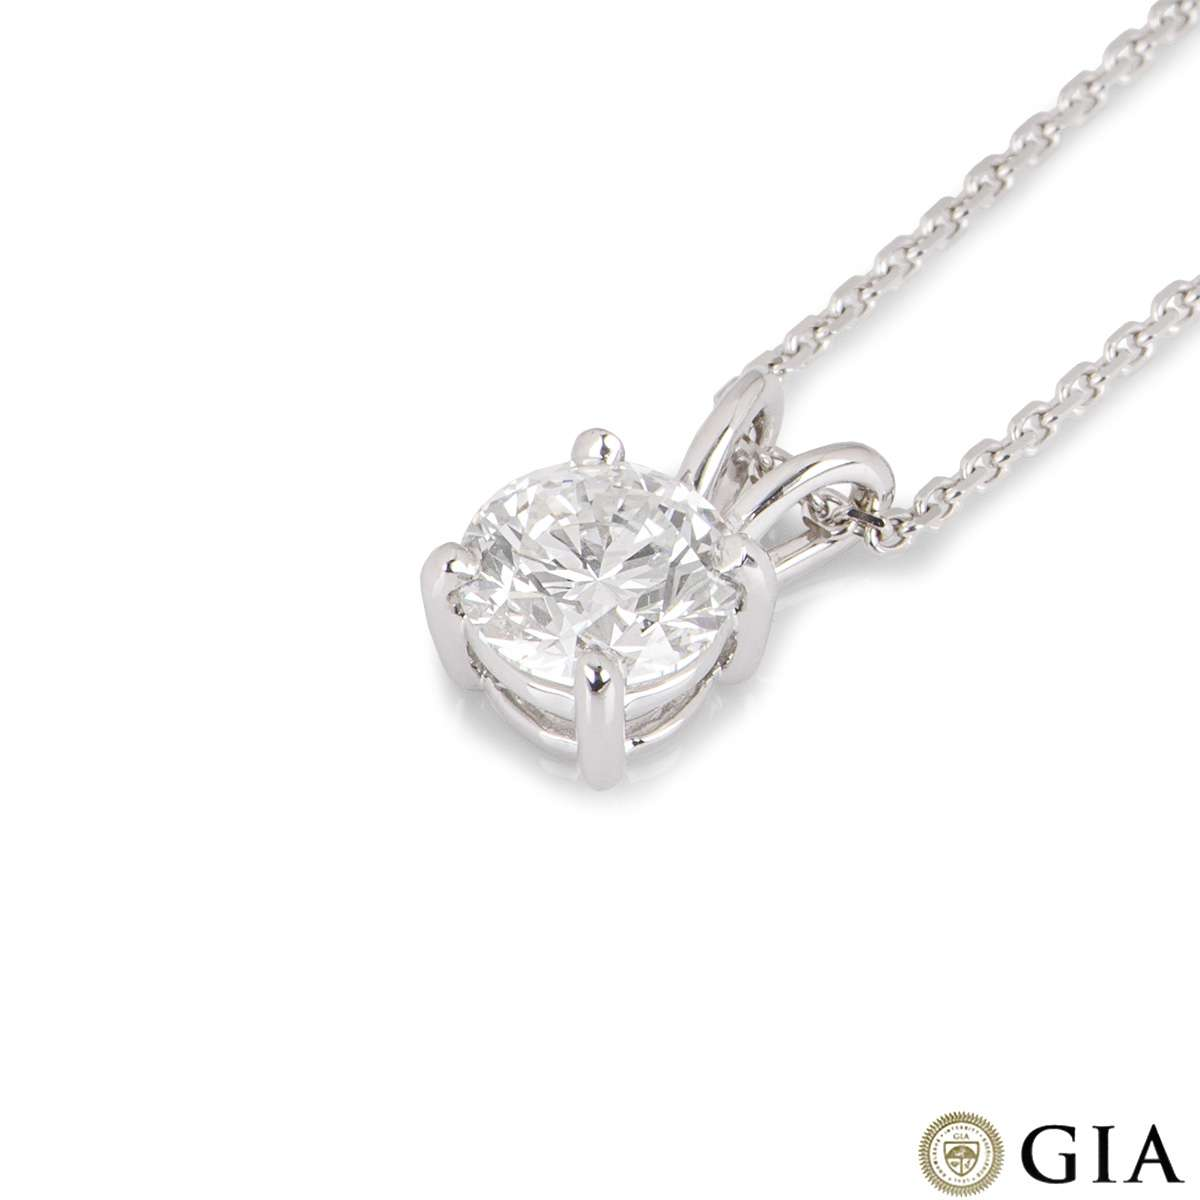 White Gold Round Brilliant Cut Diamond Pendant 1.23ct F/SI1 XXX